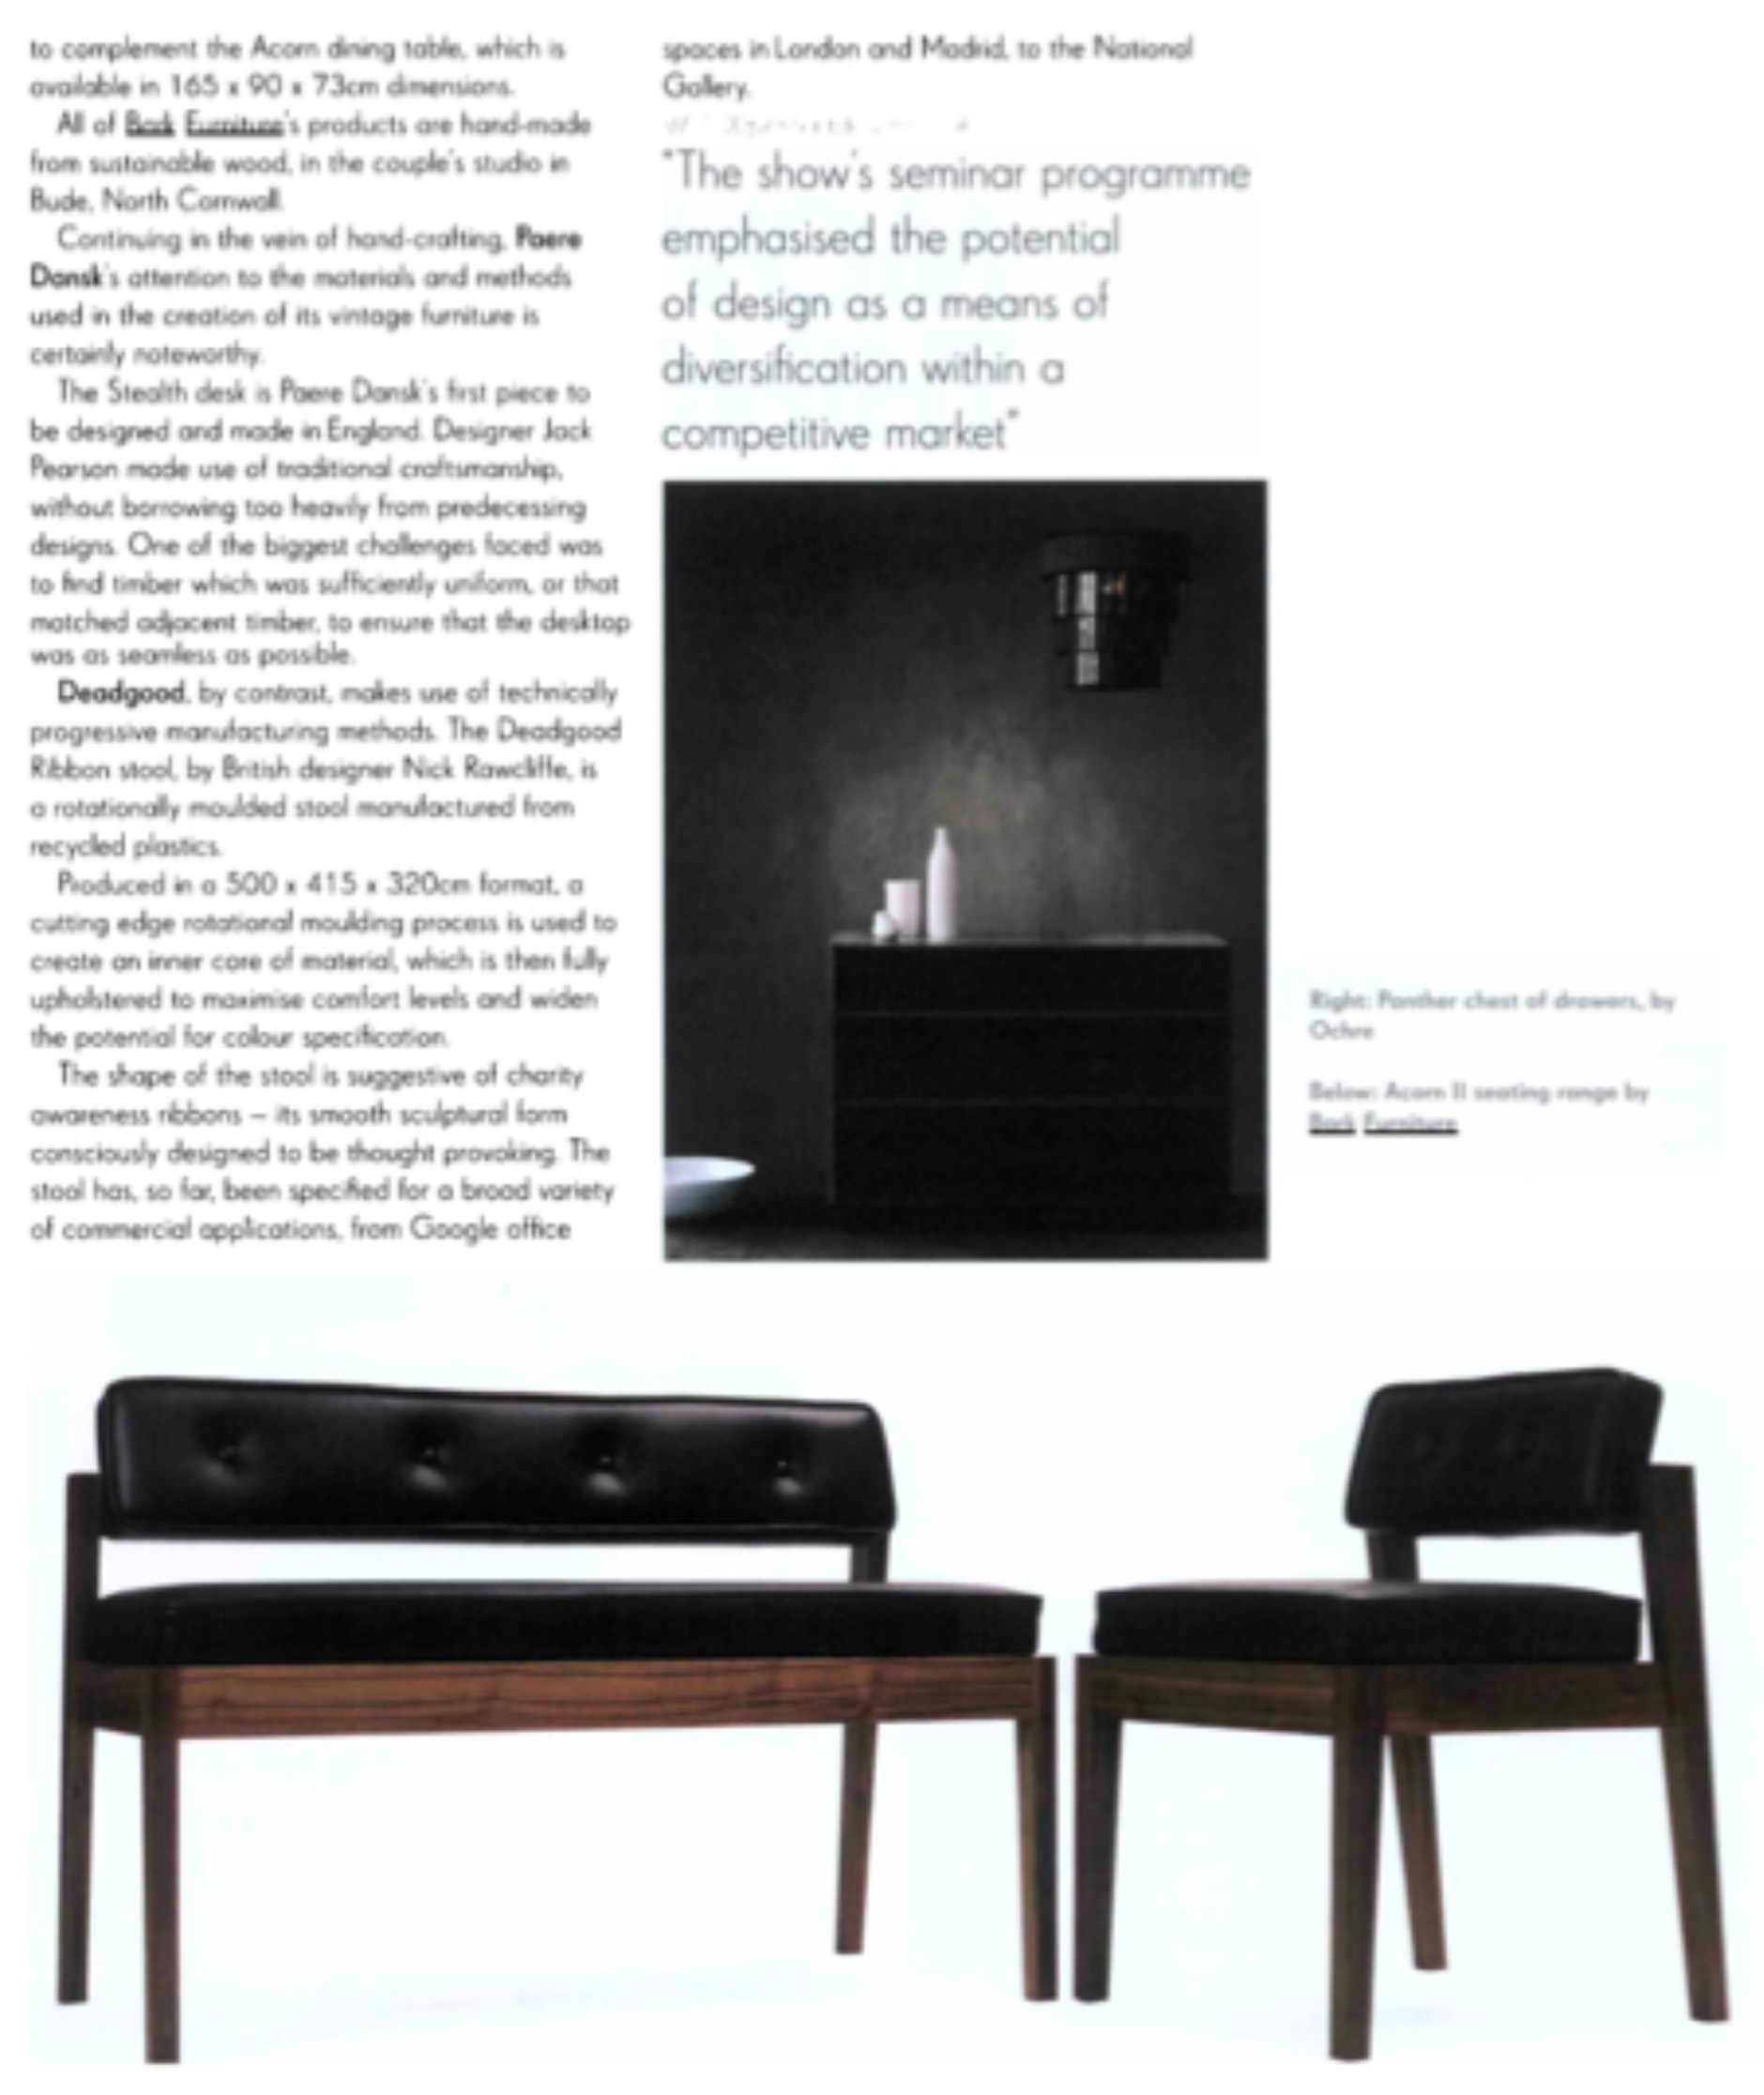 Furniture News p2 Nov 2012 1